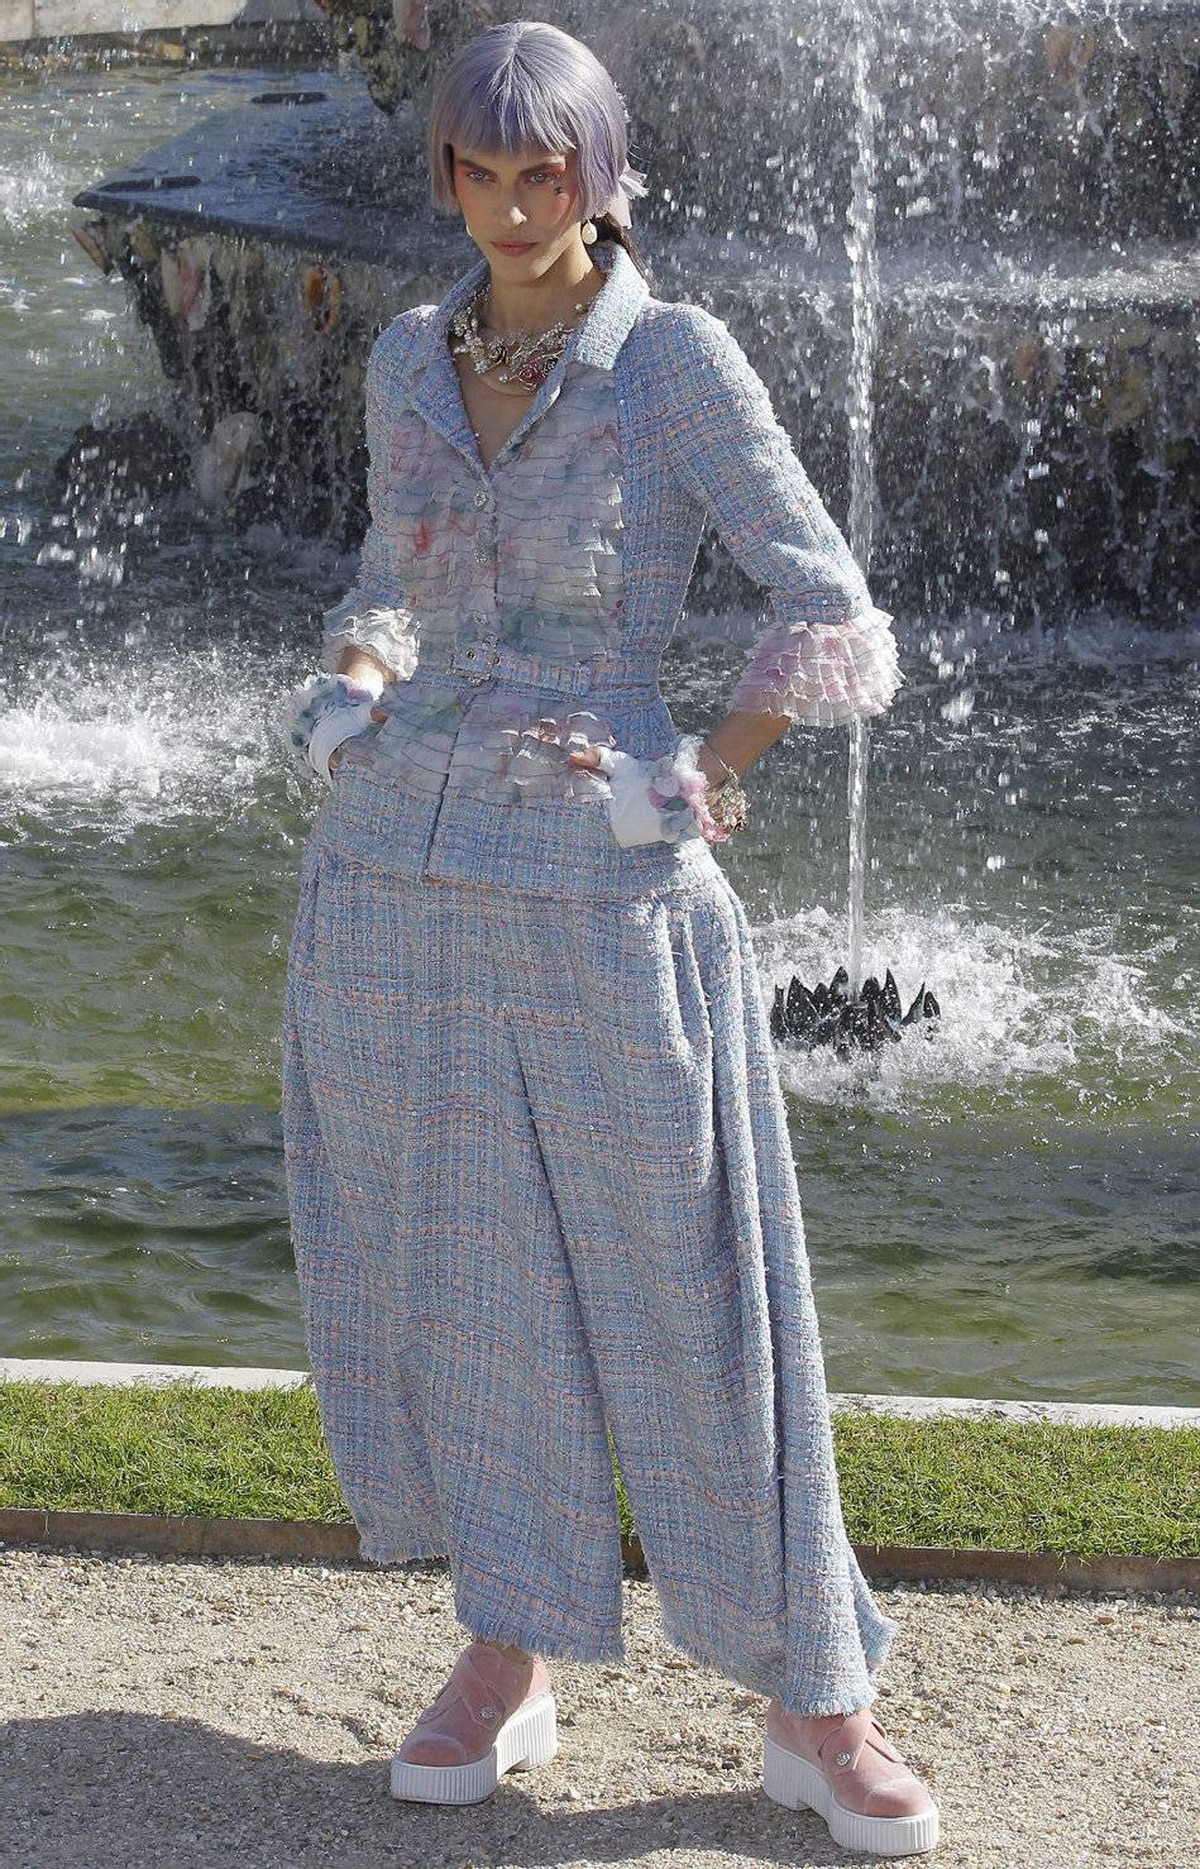 Only at Chanel could tweed palazzo pants exist without irony. Ditto the candy-coloured bobs over ponytail hair – a nod to the powdered wigs from the 18th century (and perhaps a more tasteful take on today's rainbow-coiffed stars Nicki Minaj and Katy Perry).